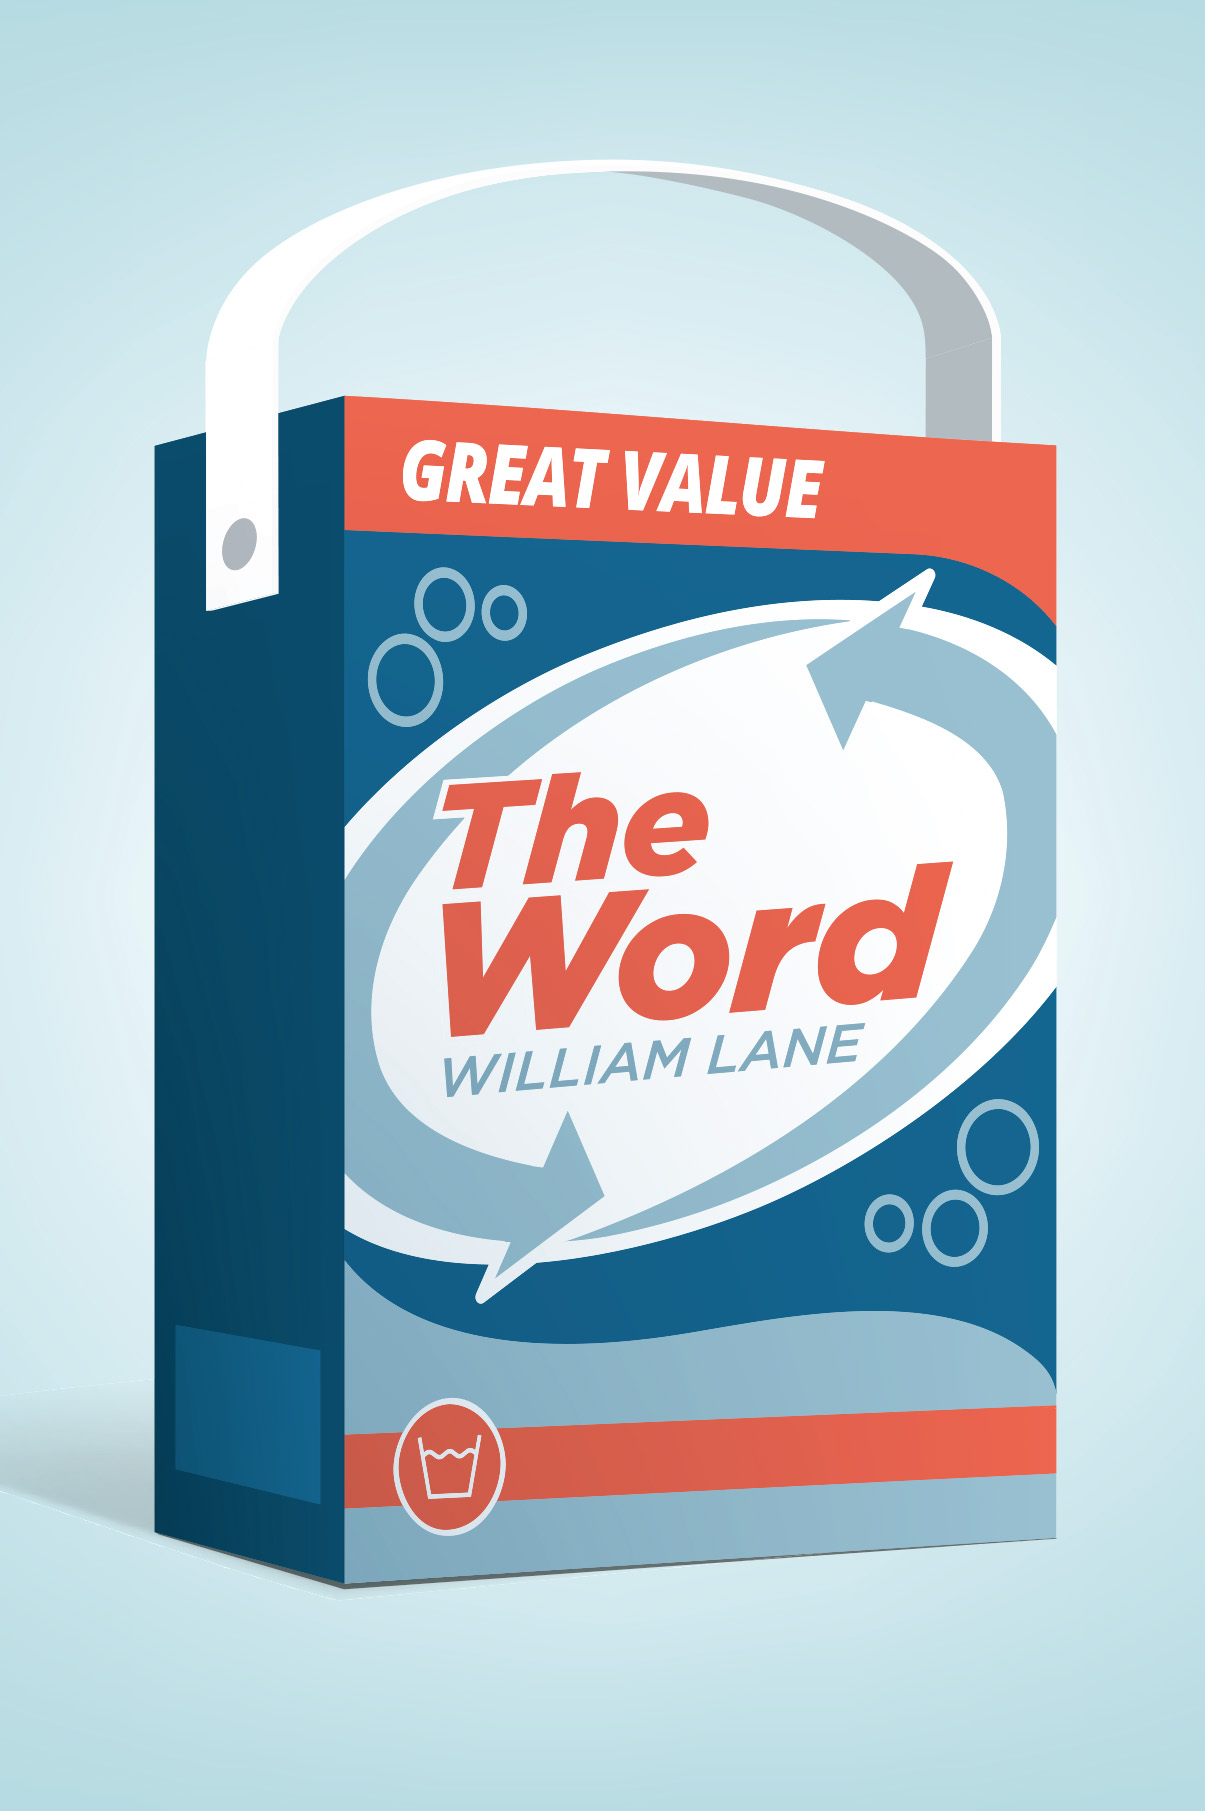 Launch of The Word  by William Lane